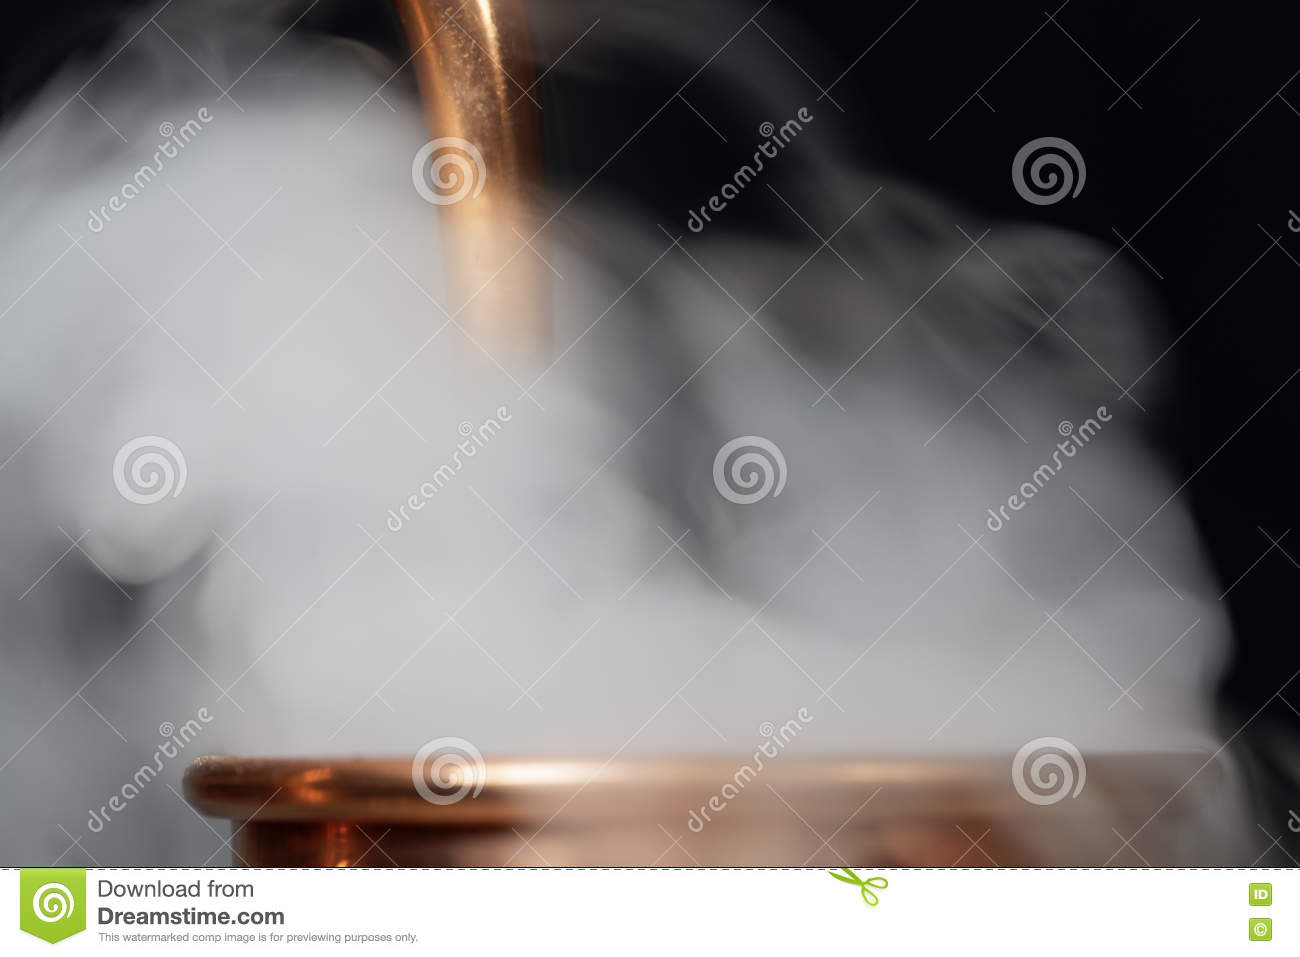 Copper pipe with steam stock image  Image of essential